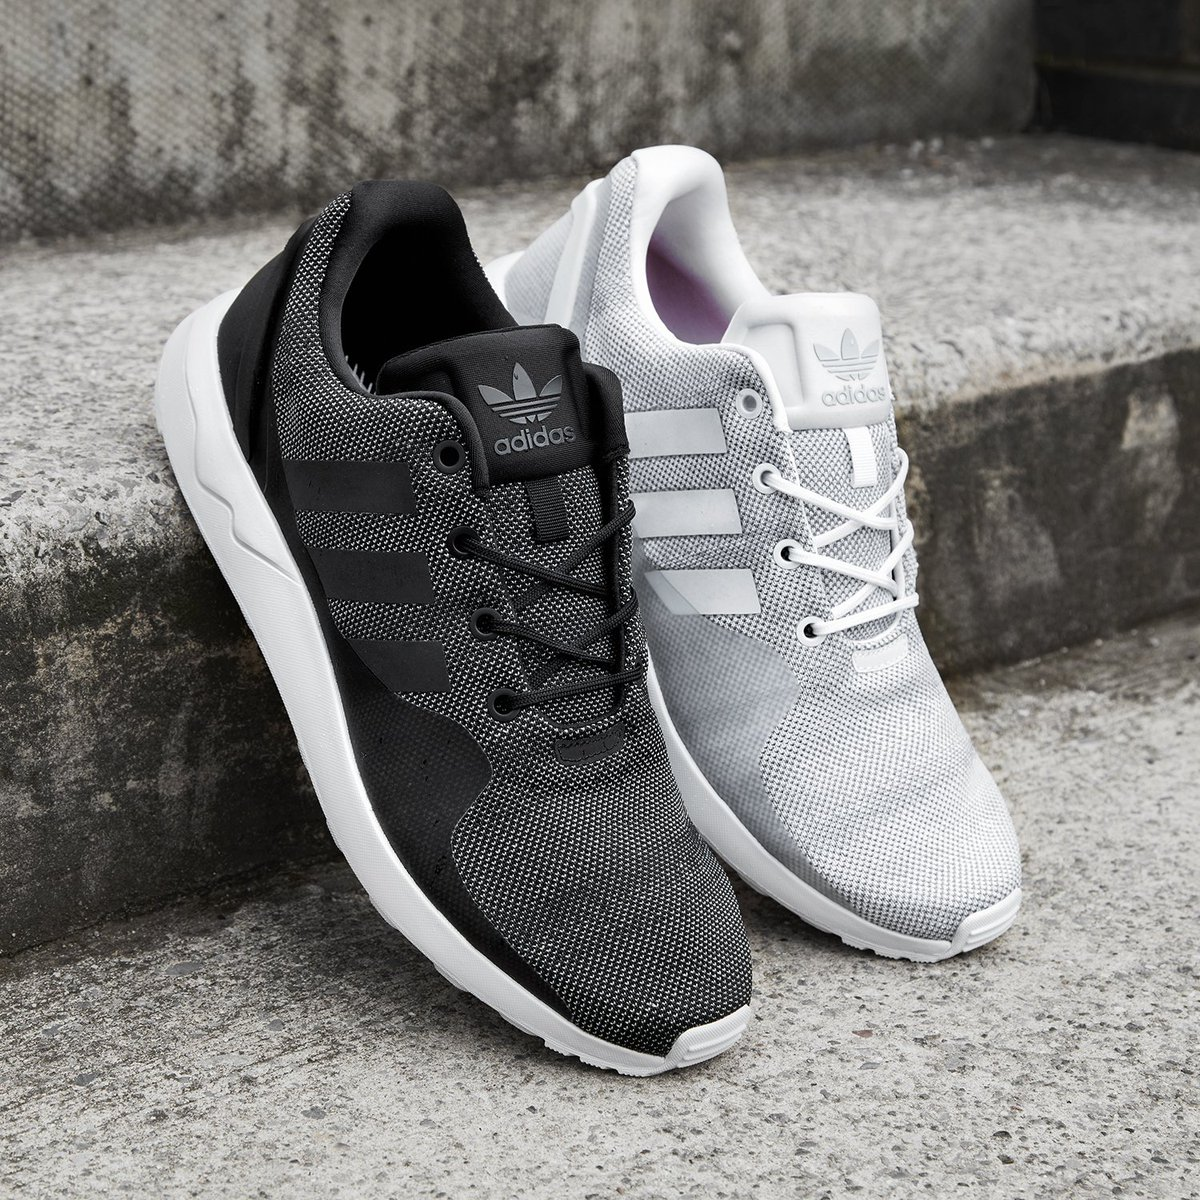 ADIDAS ZX FLUX ADV TECH MENS TRAINERS